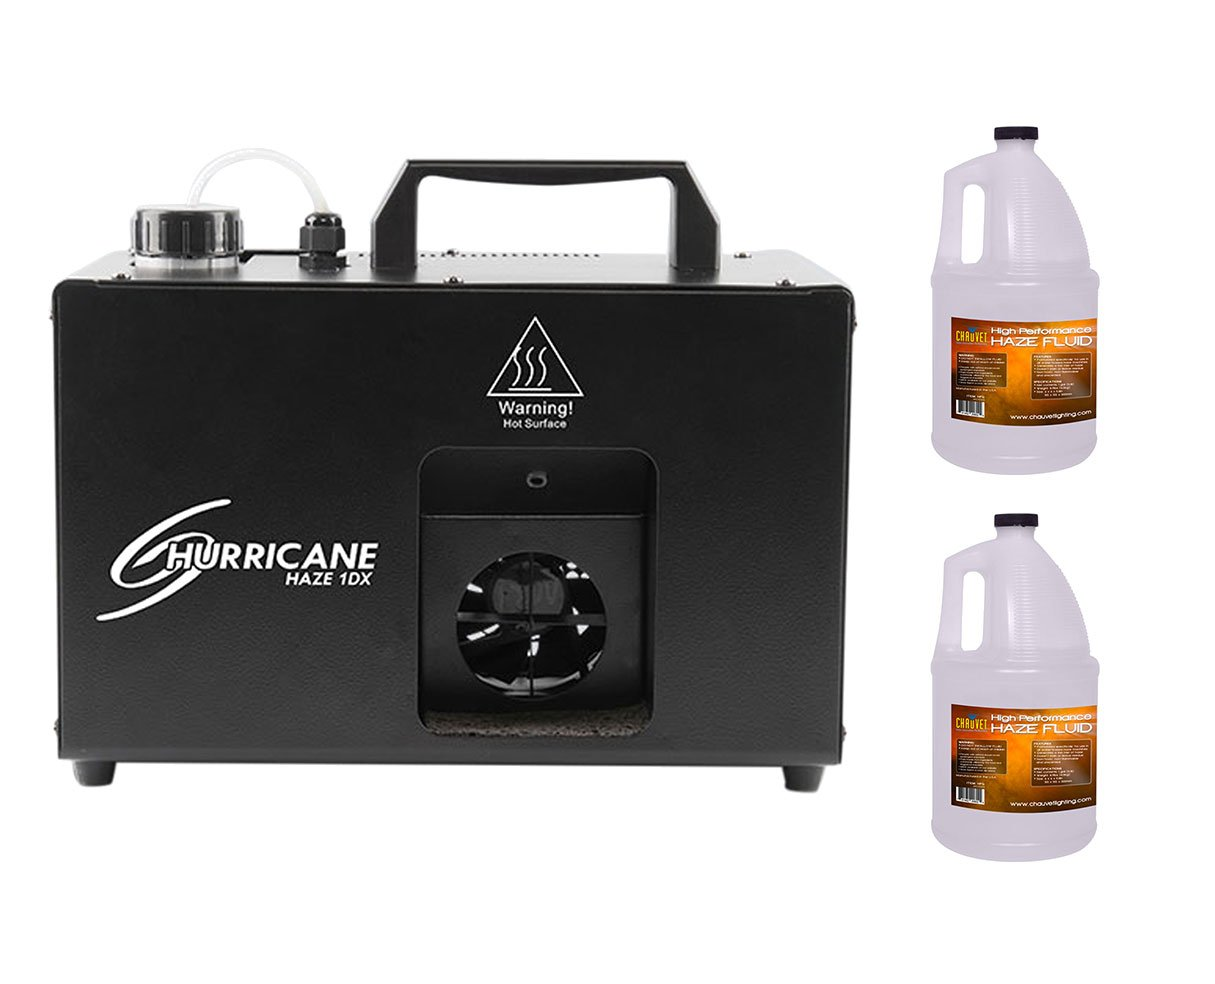 CHAUVET DJ Hurricane Haze 1DX HHAZE1DX Machine +2x Fluid/Juice Gallon